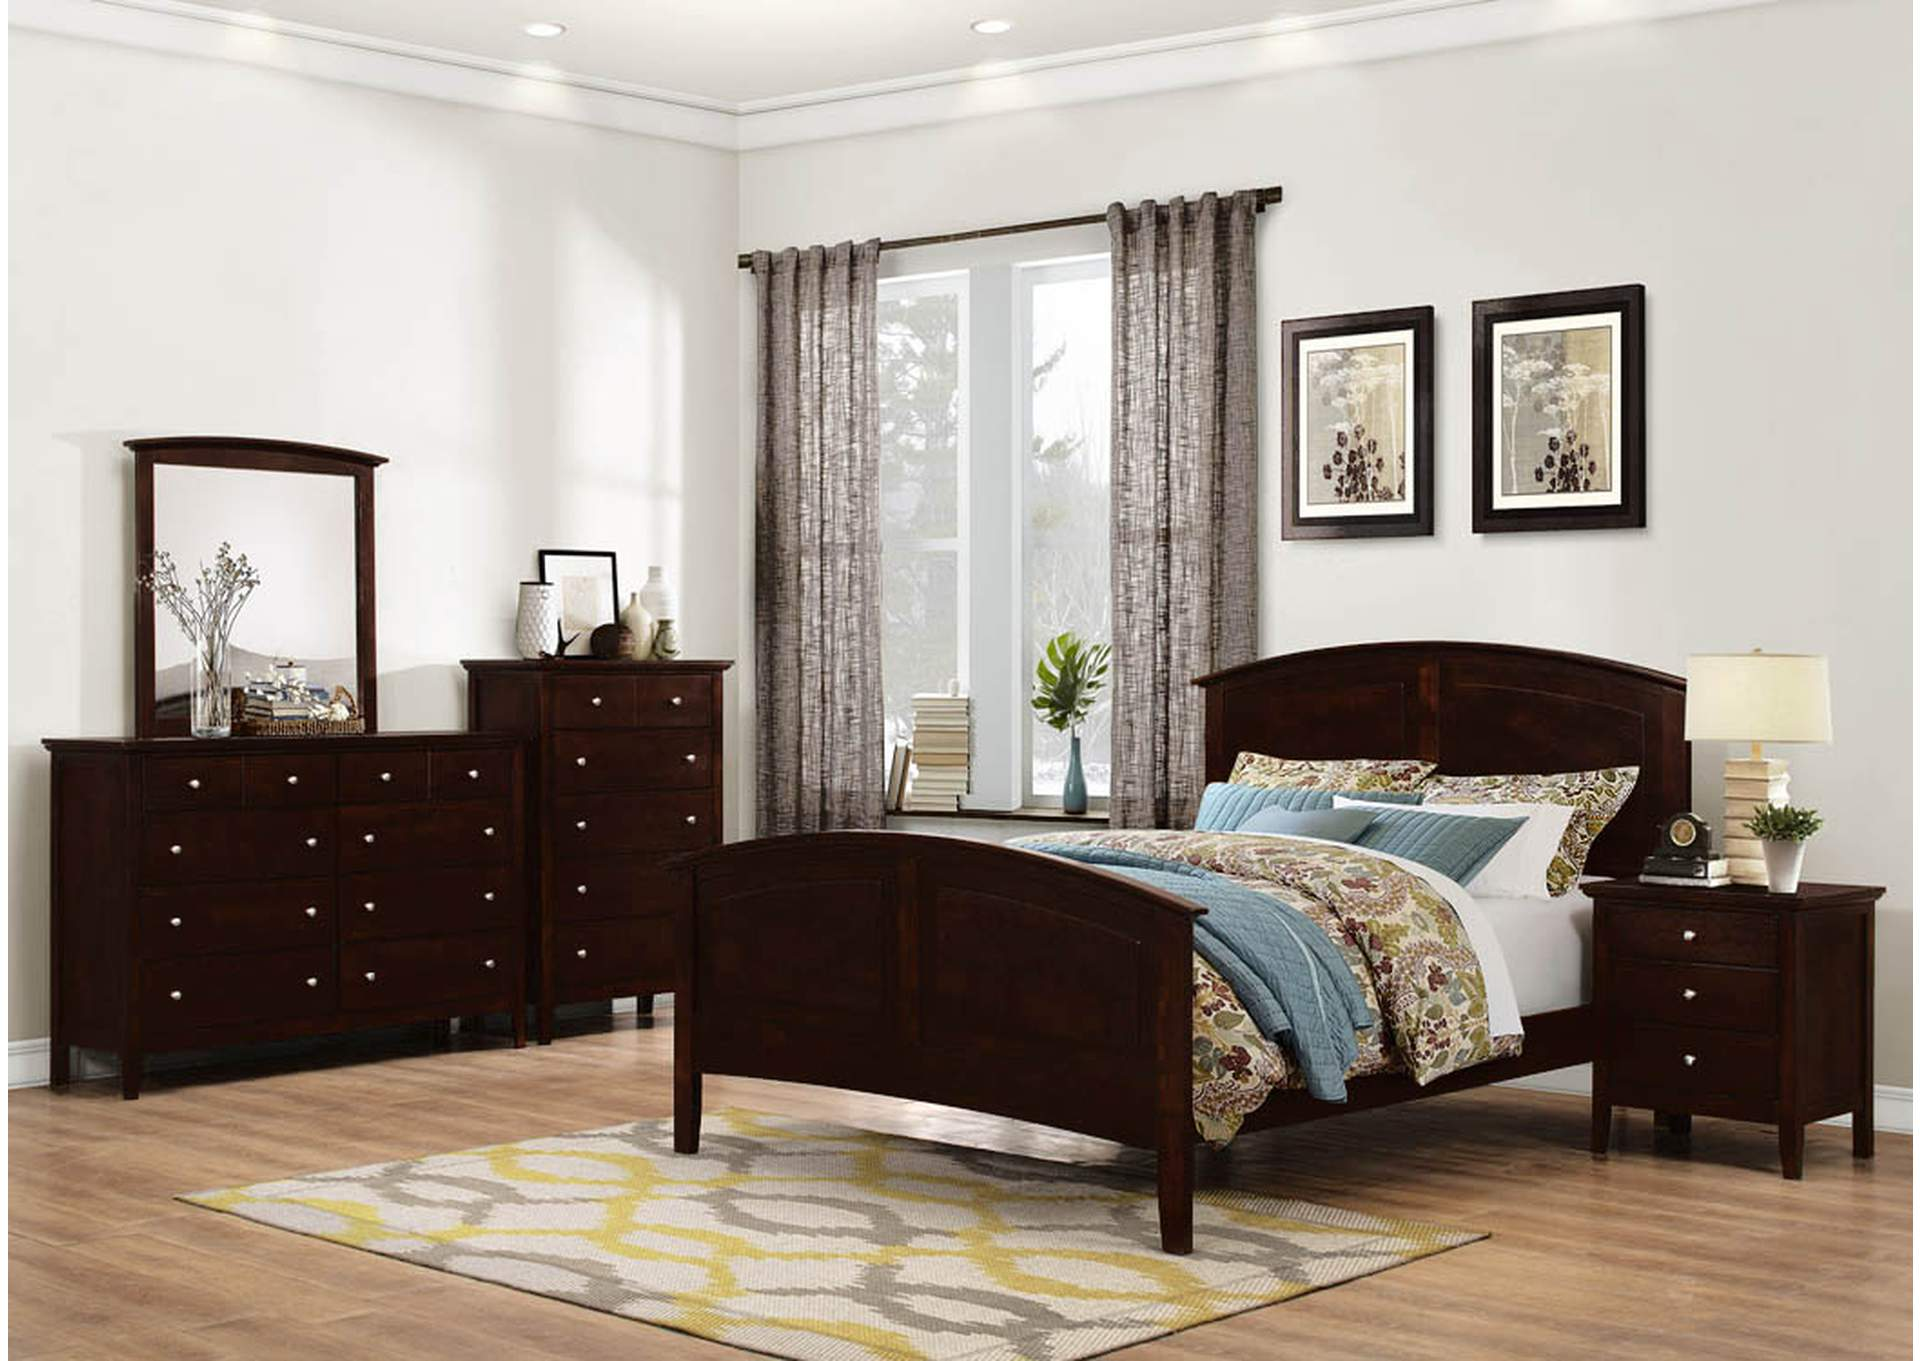 Windlore Dark Cherry Panel Queen 4 Piece Bedroom Set W/ Nightstand, Dresser & Mirror,Global Trading